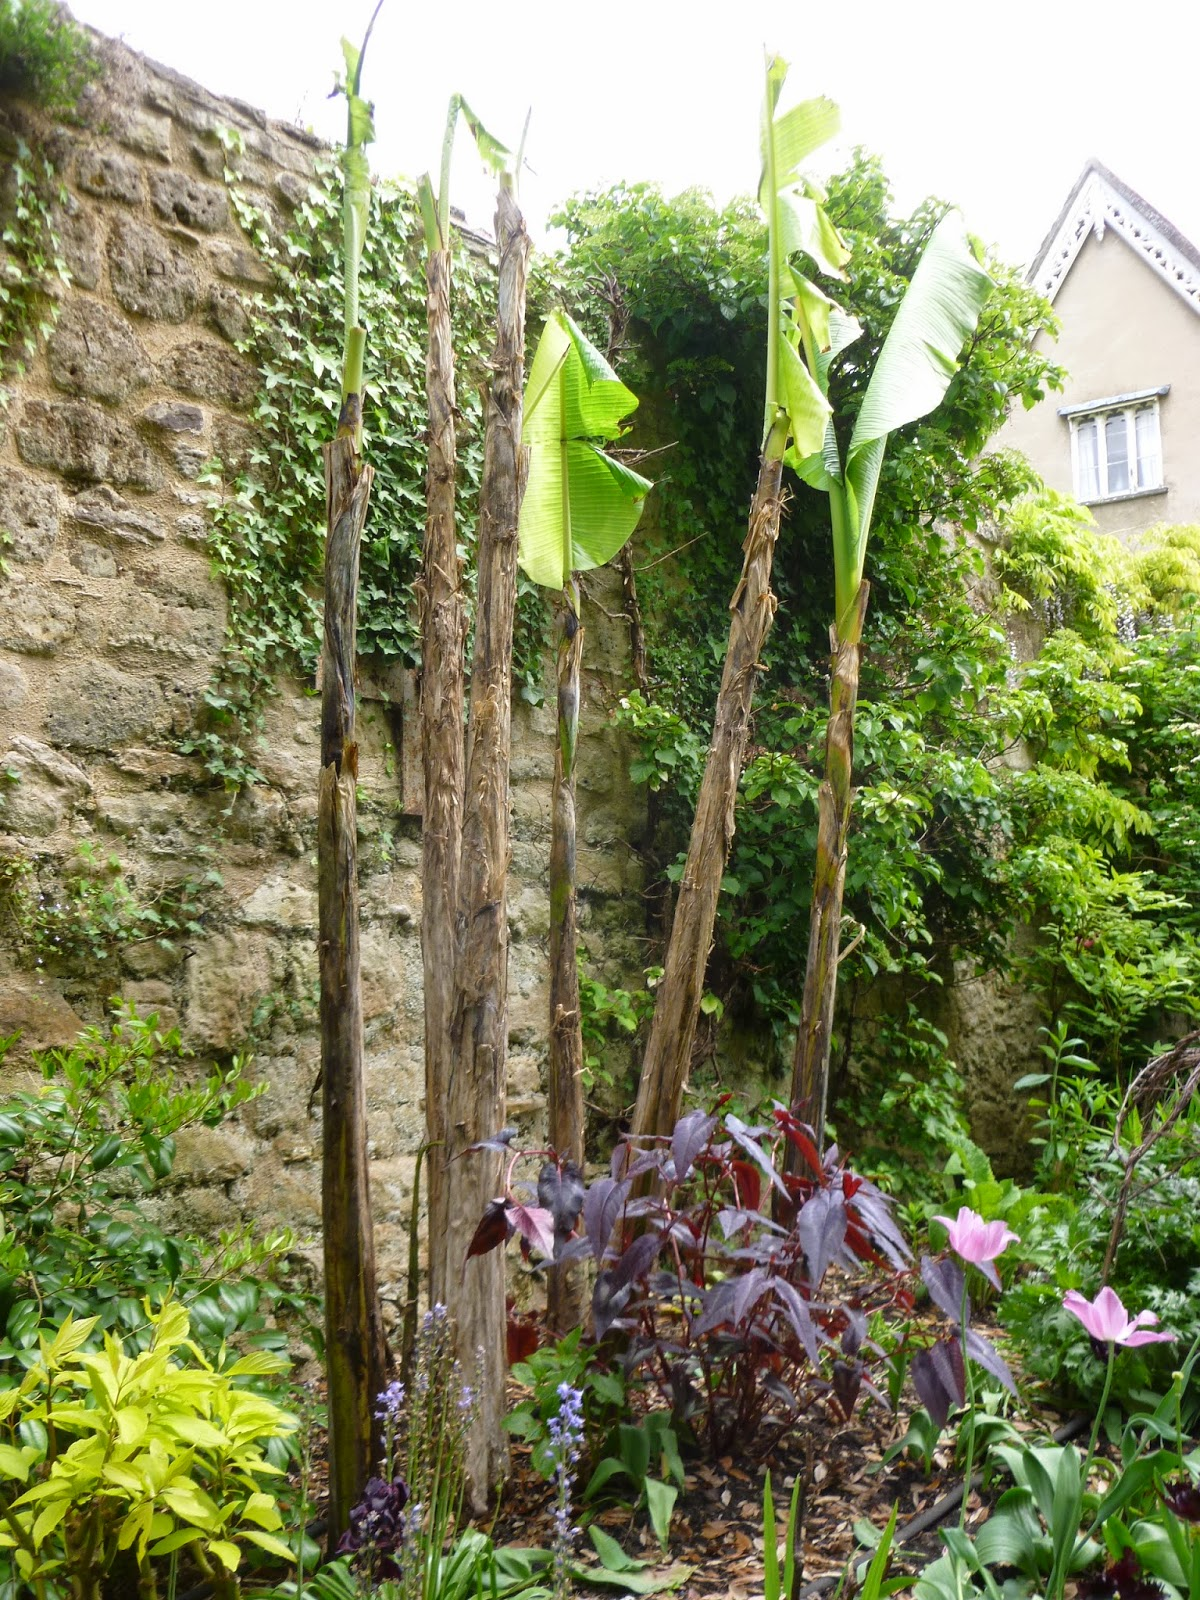 worcester college gardeners removing the fleece from the banana plants. Black Bedroom Furniture Sets. Home Design Ideas